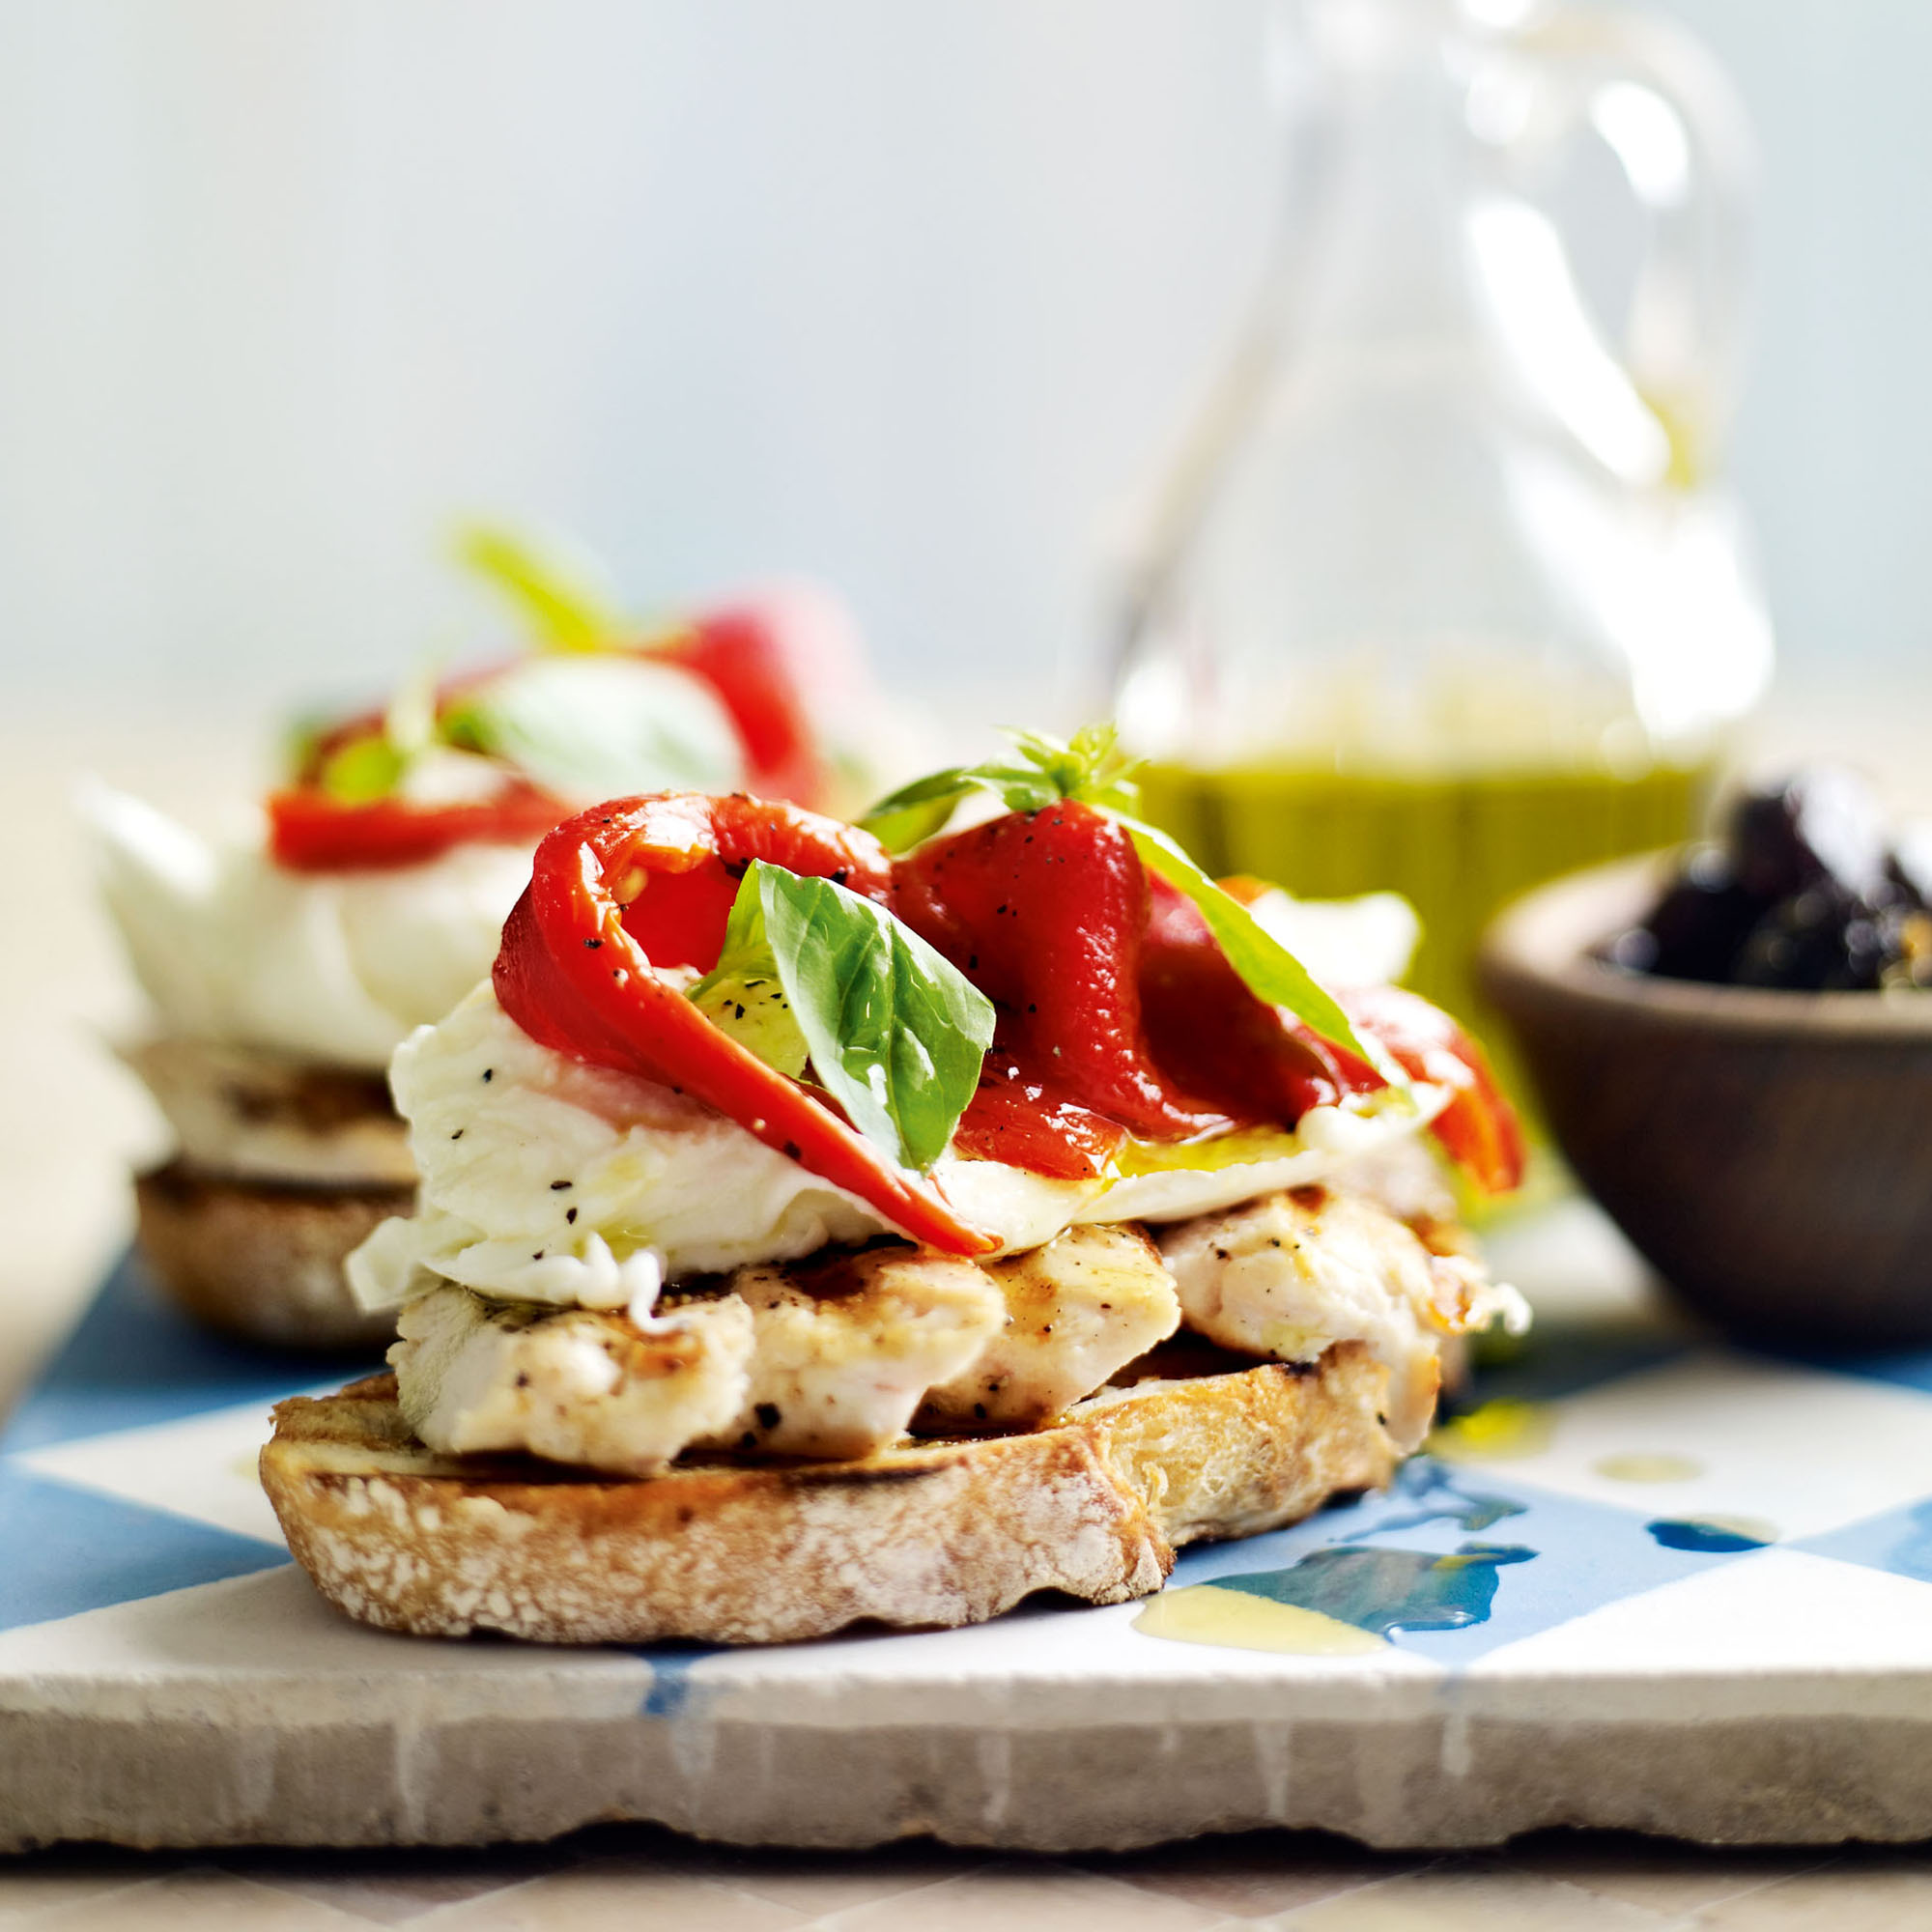 So Simple Mozzarella Open Sandwich Lunch Recipes Woman Home